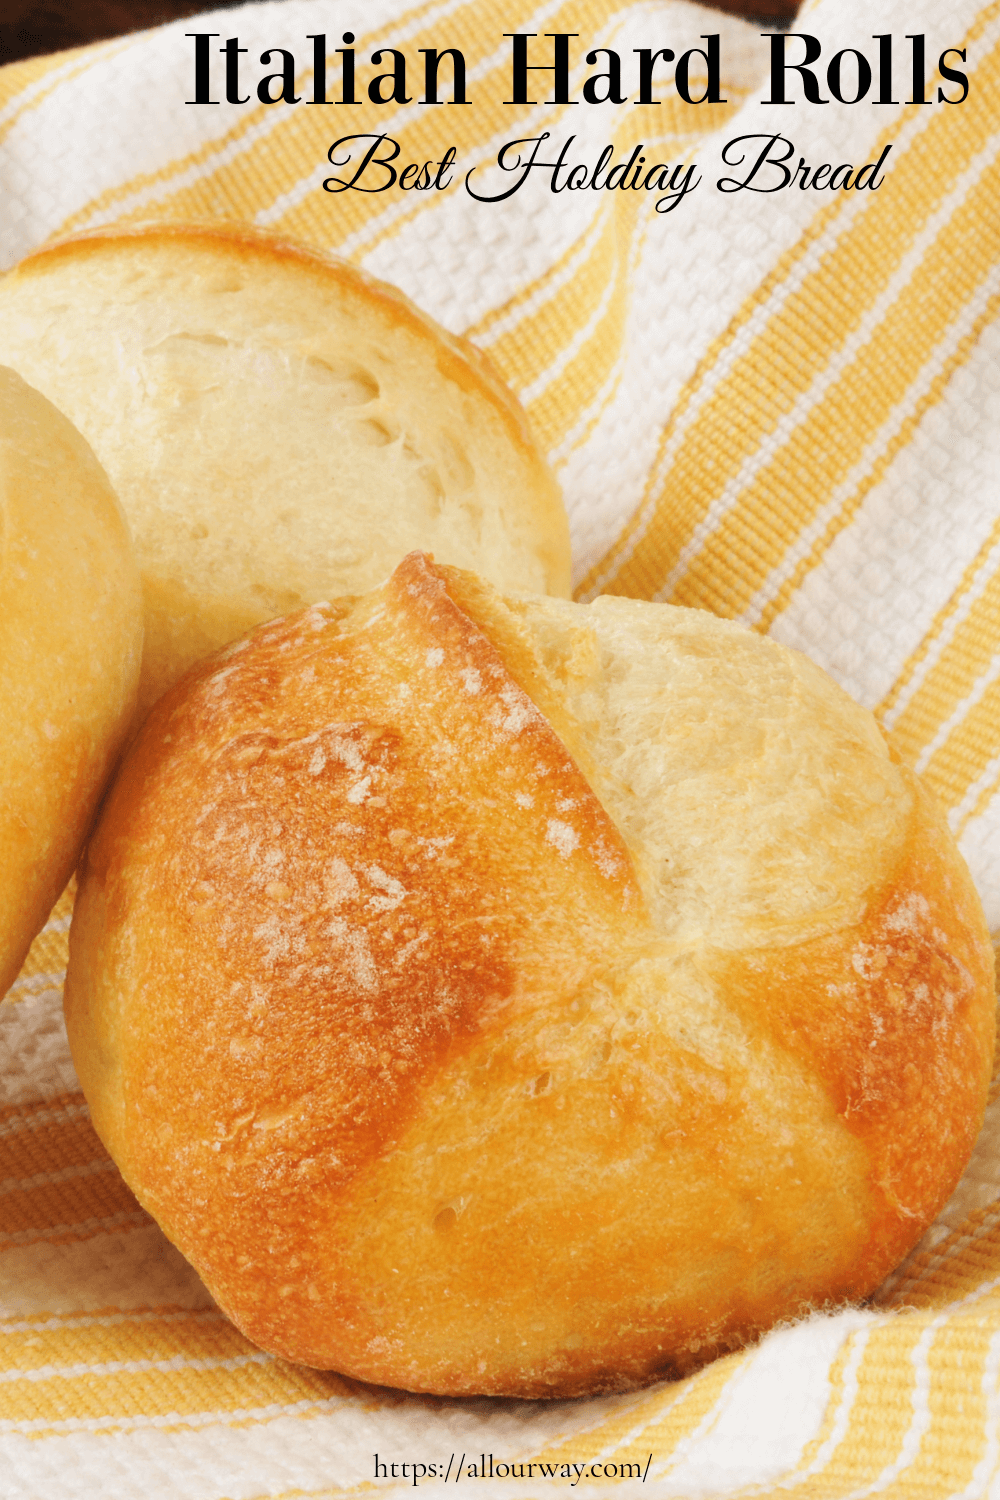 A light airy roll with a crunchy crackly crust. Does not use a lot of yeast, instead it relies on extra-long fermentation for flavor development. It's the perfect dinner roll to serve at a holiday meal. Not sweet, just plenty of rich bread flavor. #dinnerrolls, #hardrolls, #Italianhardrolls, #crustyrolls, #holidaybuns, #yeastbuns, #yeastrolls